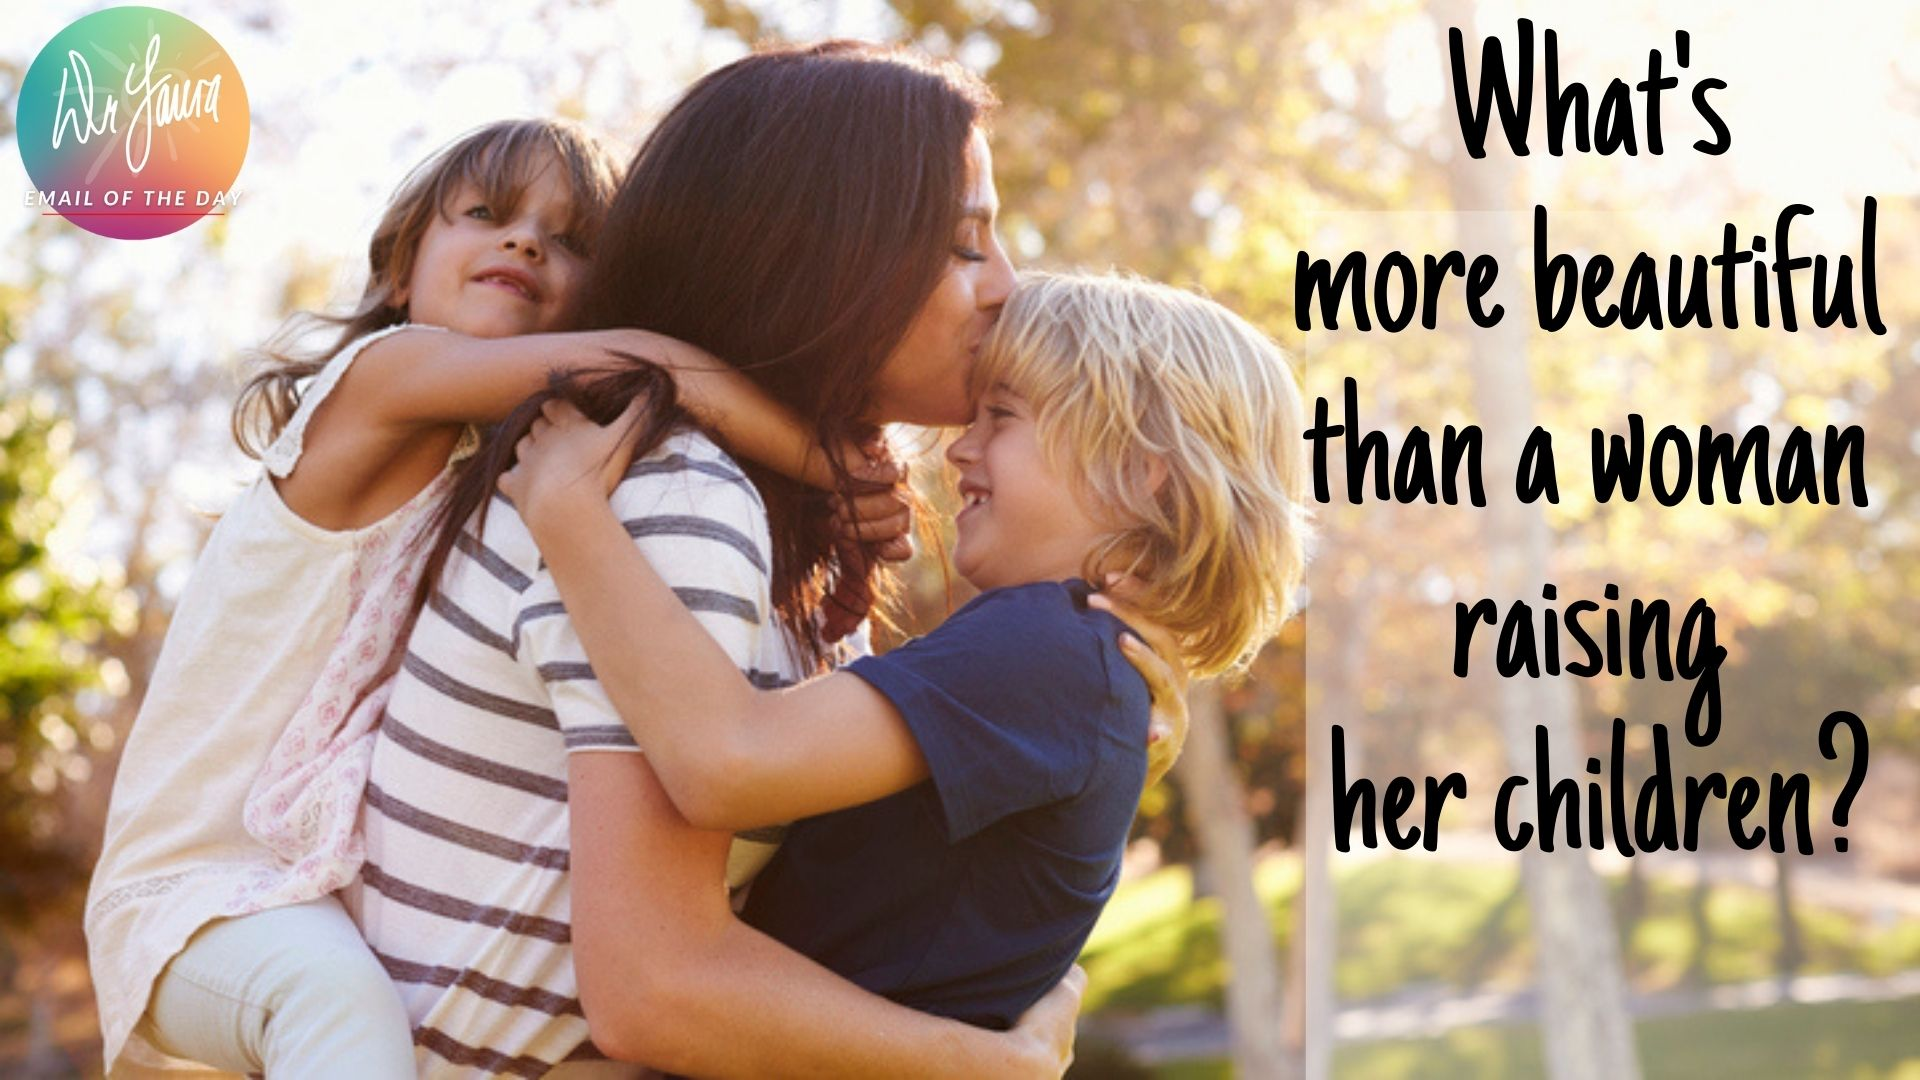 Email of the Day: My Wife Is Not Valued for Staying Home To Raise Our Kids